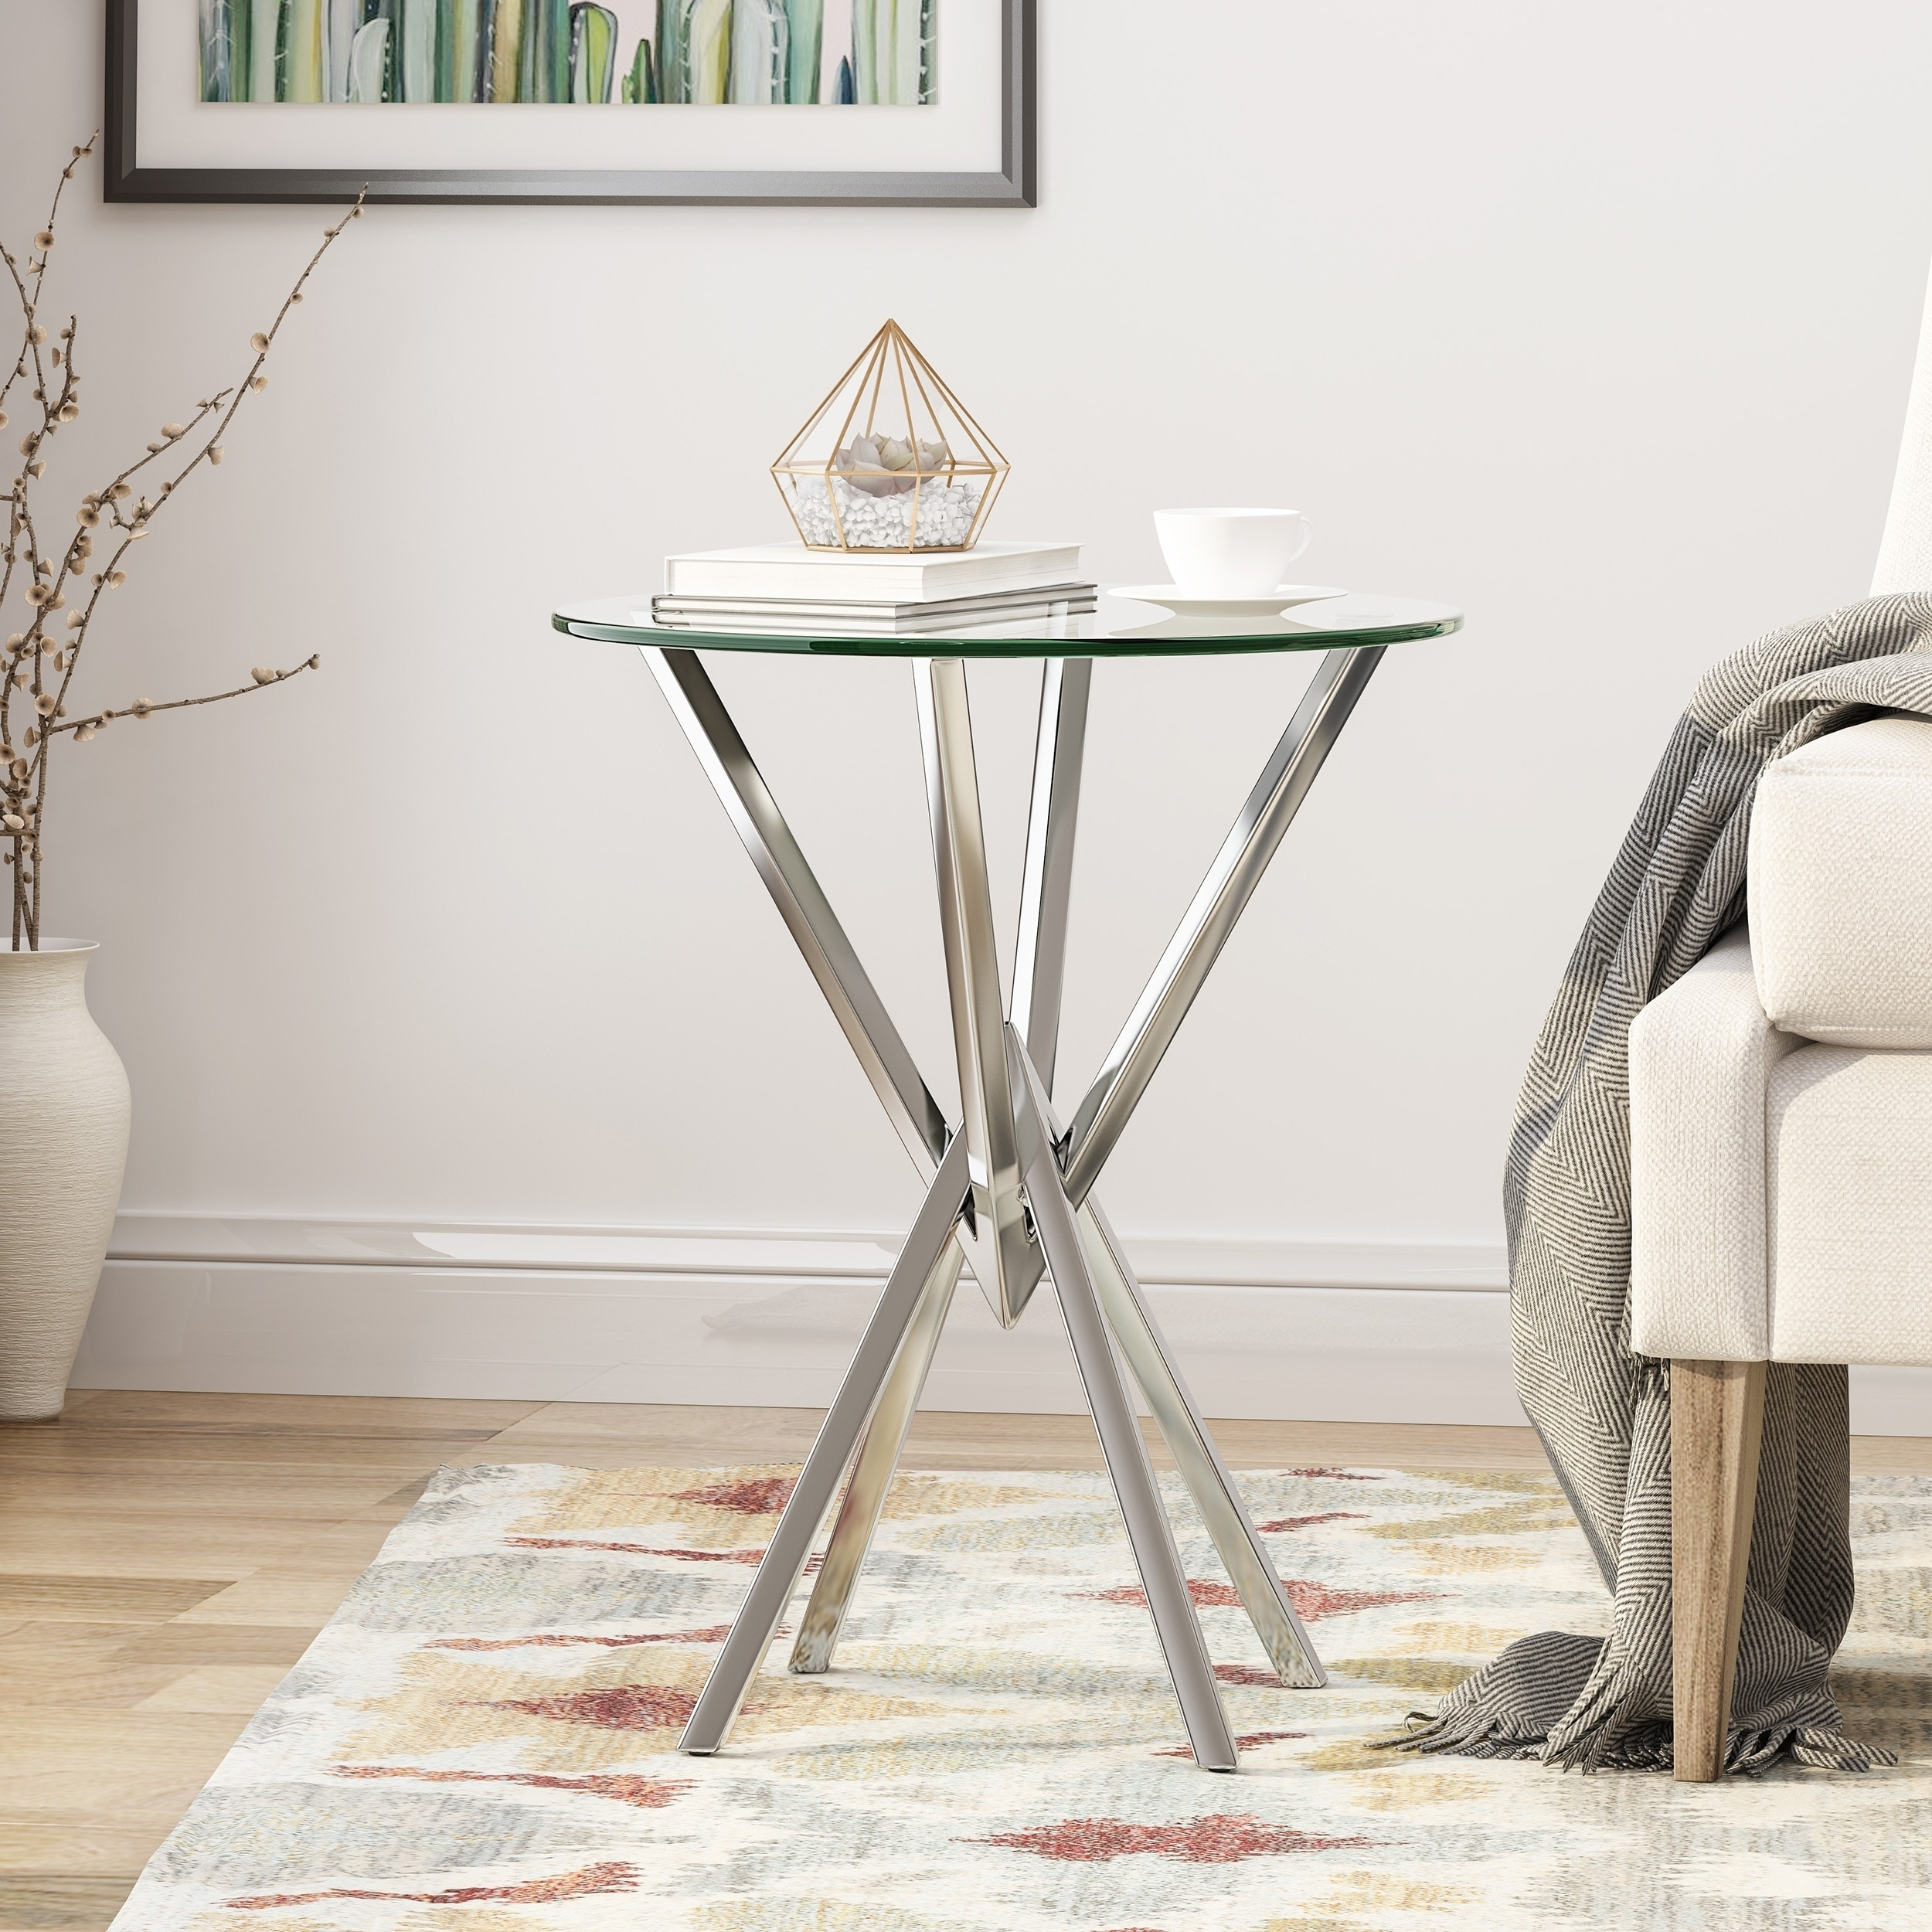 reputable site 04676 285c7 Christopher Knight Home DeMarco Modern Geometric Tempered Glass Accent Table